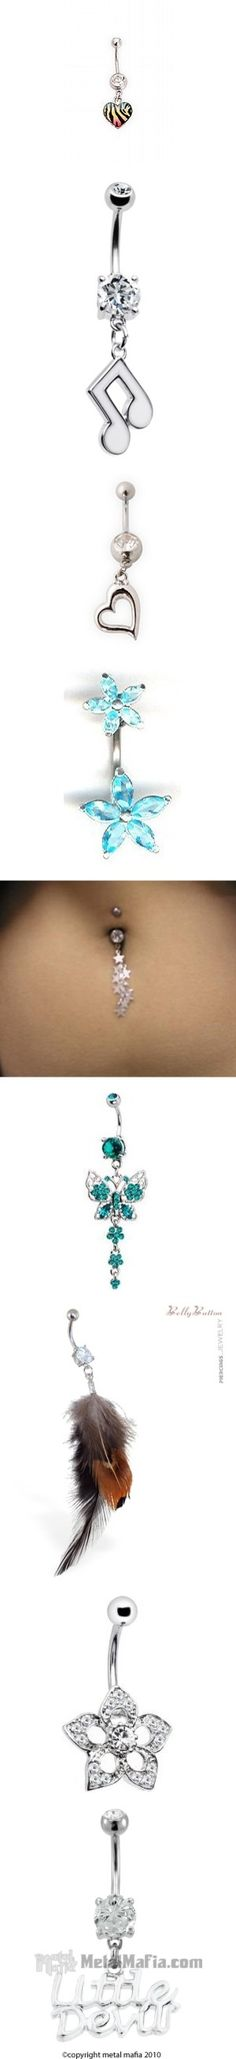 """belly button rings i want 3"" by megan-purpleswag ❤ liked on Polyvore"